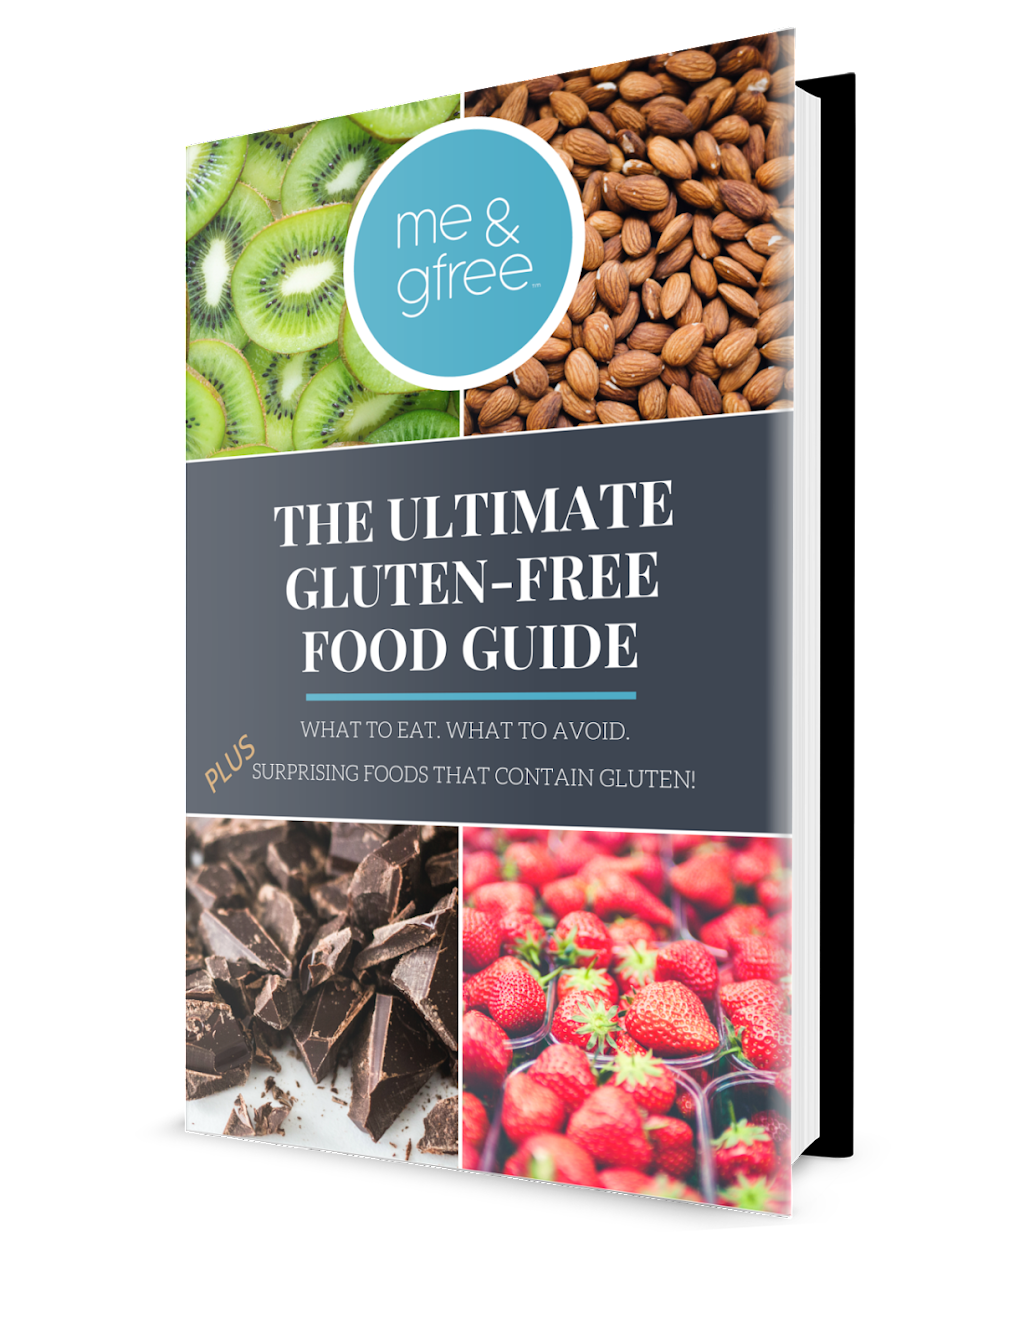 The Ultimate Gluten-Free Food Guide - meandgfree.com